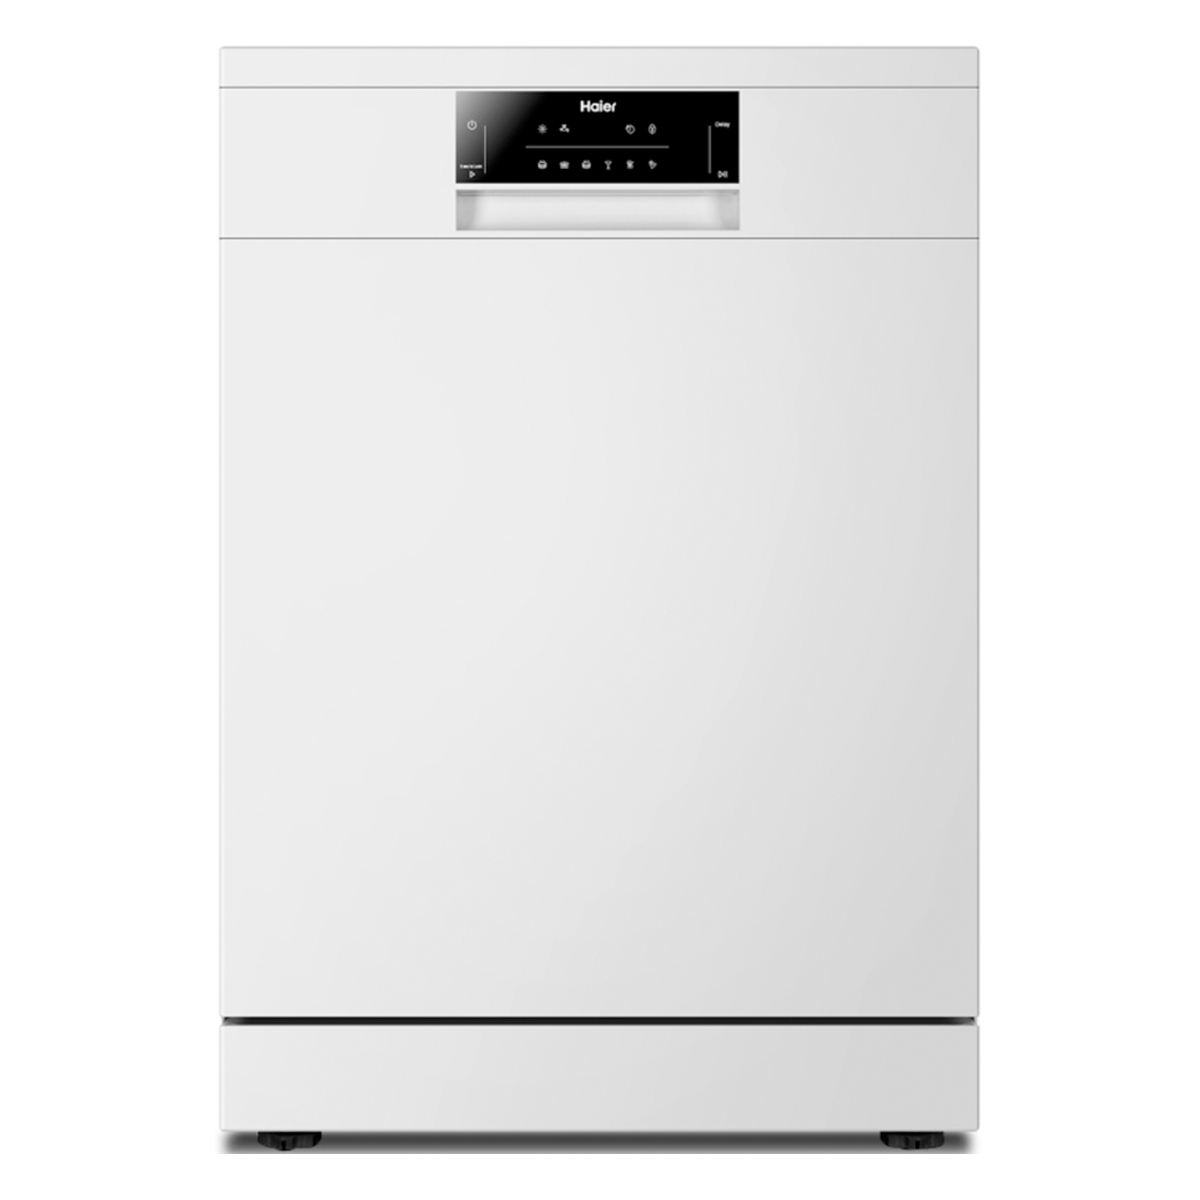 Haier HDW13G1W Freestanding Dishwasher